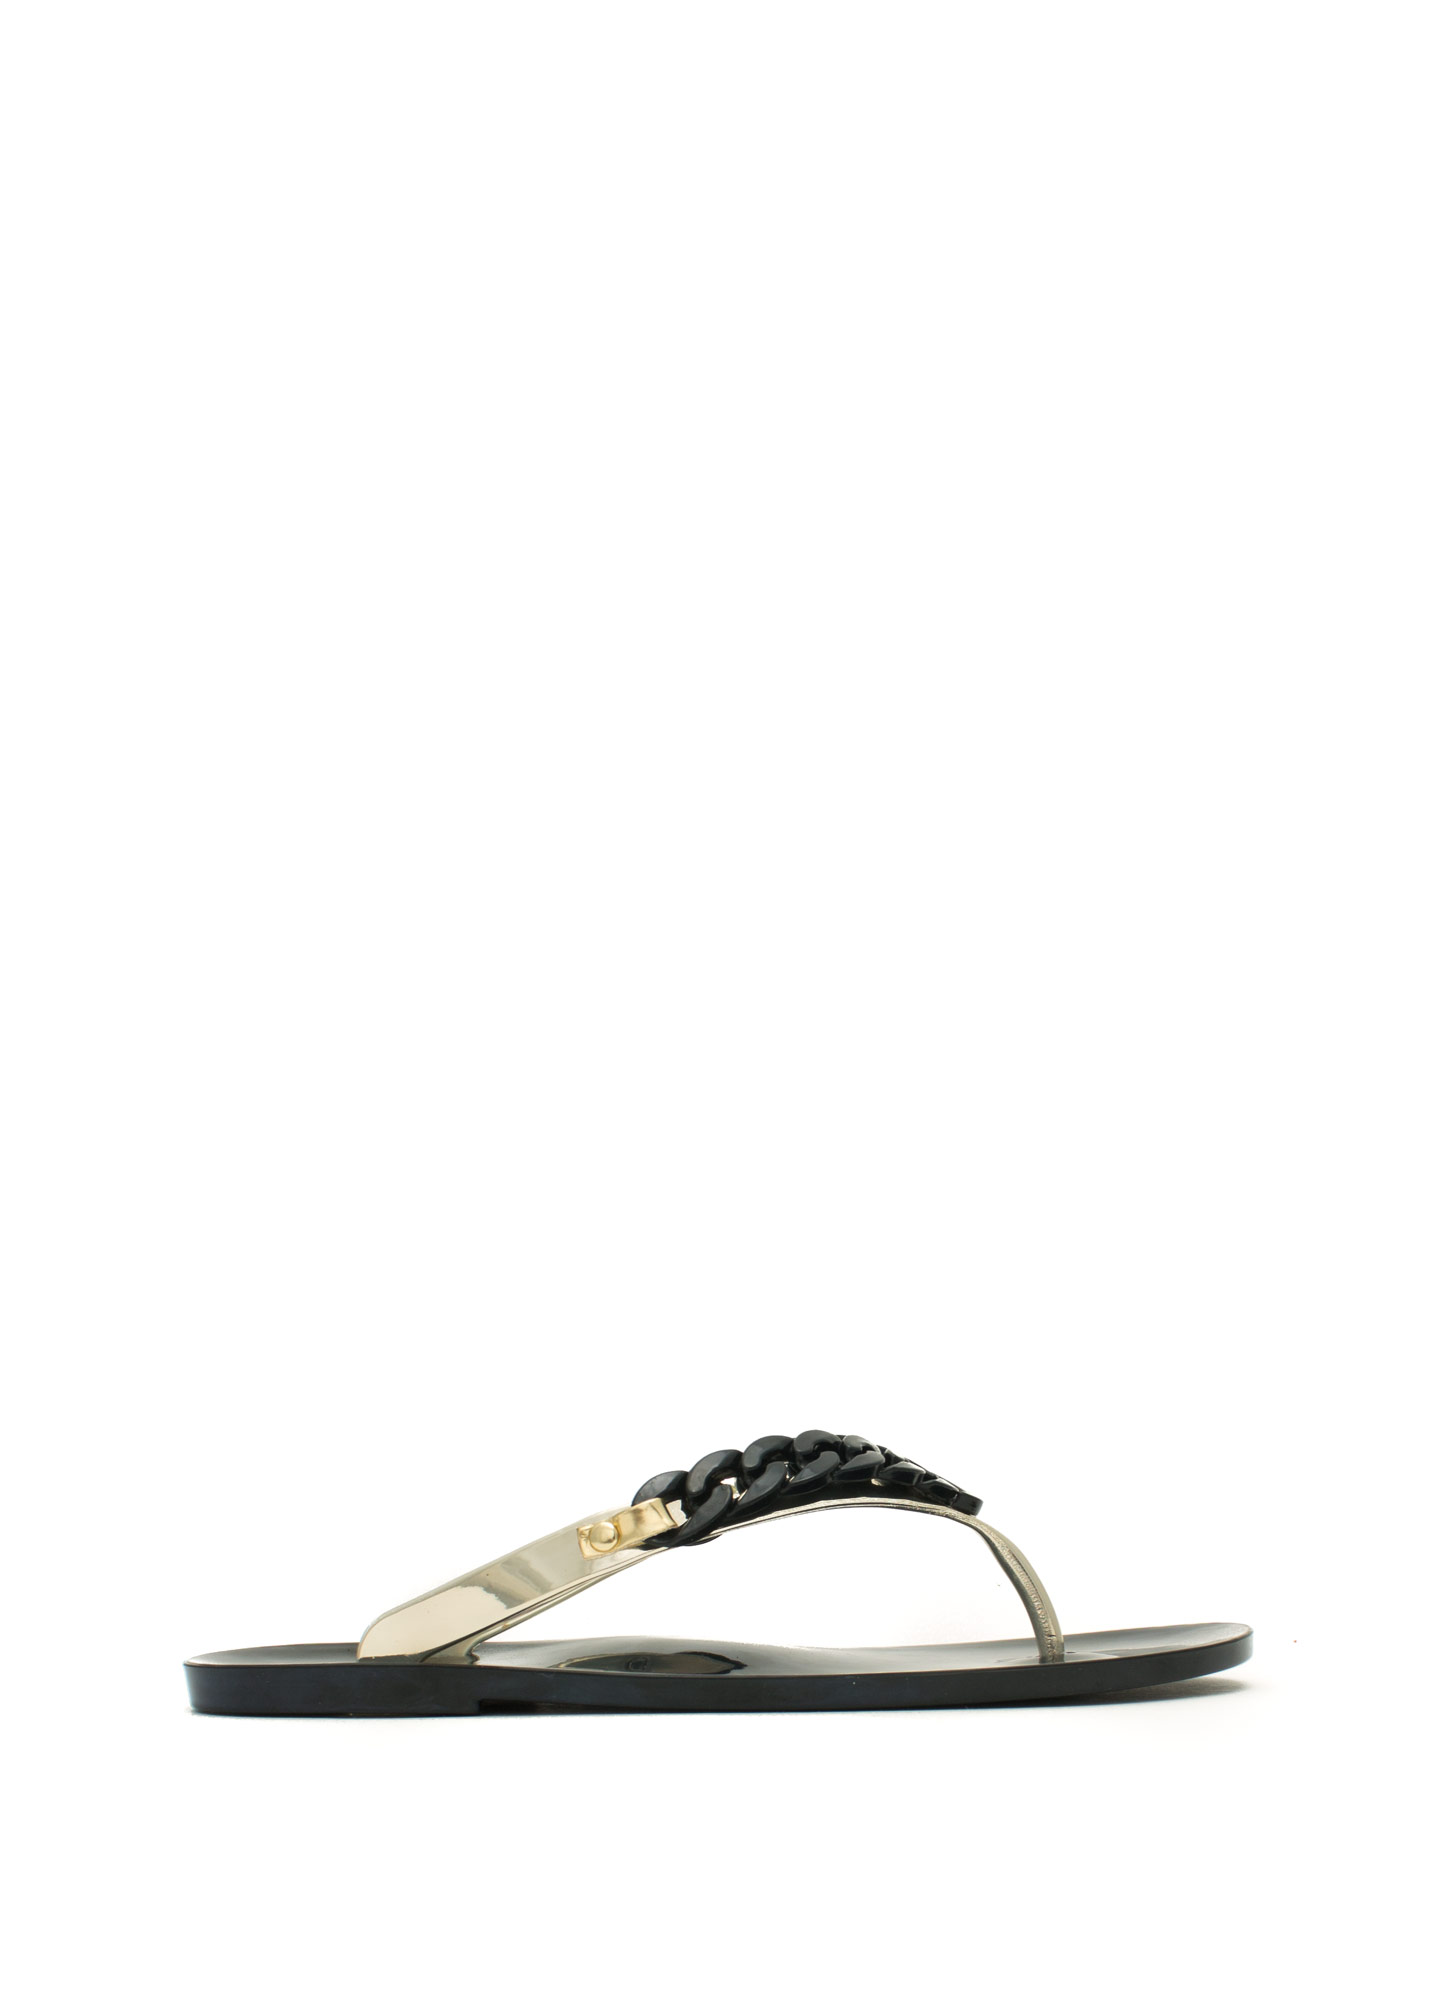 Curb Link Jelly Thong Sandals BLACKGOLD